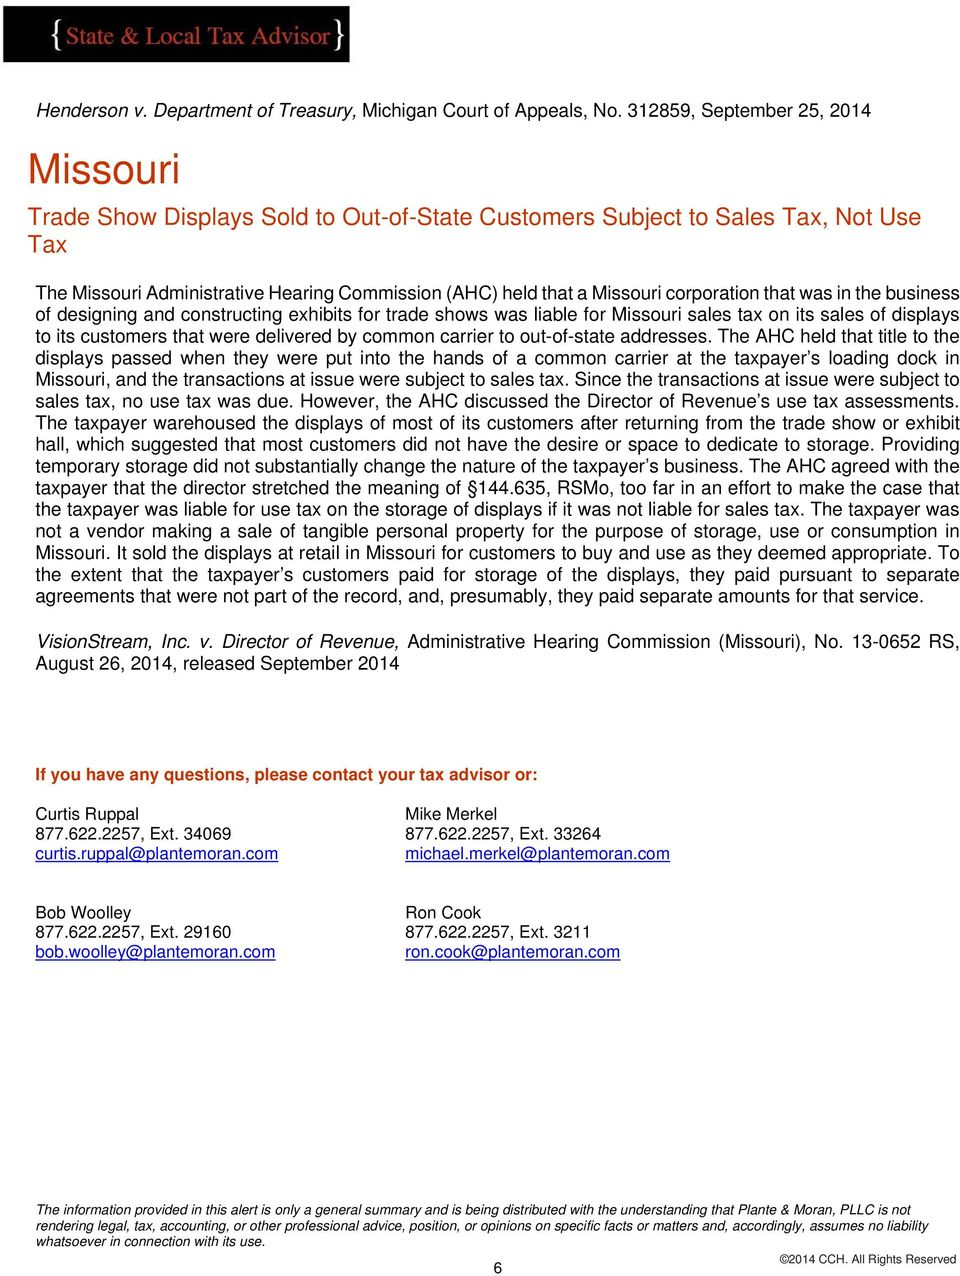 corporation that was in the business of designing and constructing exhibits for trade shows was liable for Missouri sales tax on its sales of displays to its customers that were delivered by common